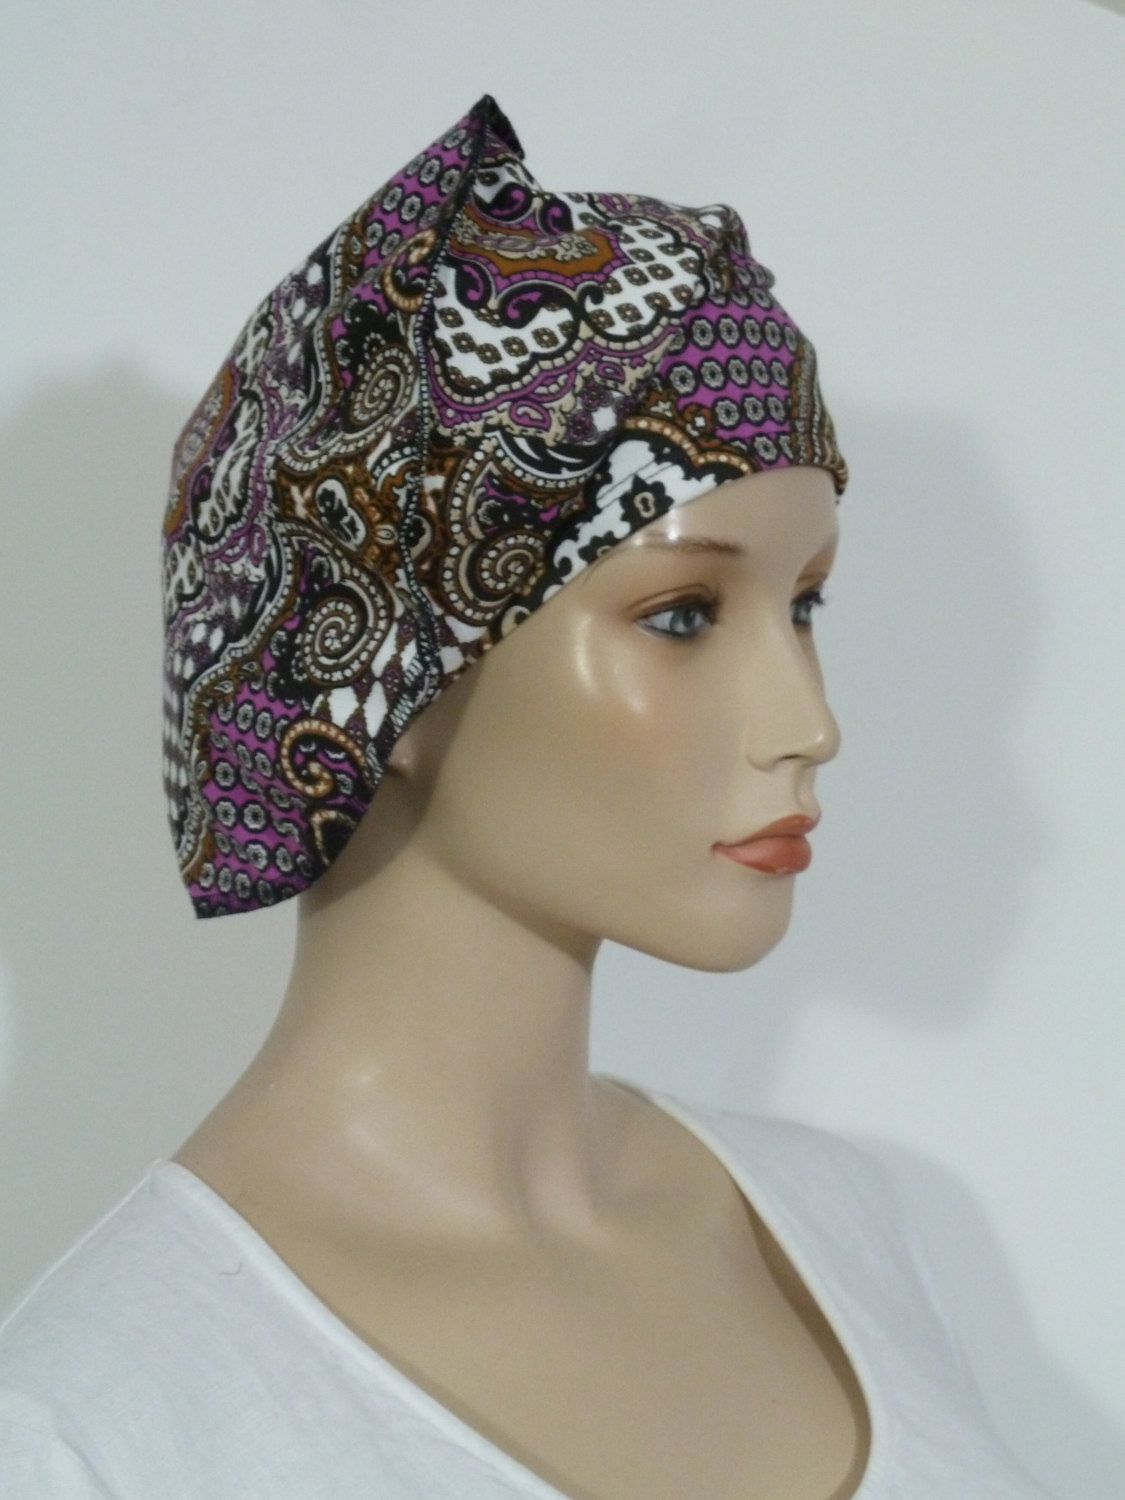 dc8317cd801 Fearlessly stylish high quality multi coloured vintage paisley print jersey  slouchy beanie hat ( ideal chemo hat) by whitebagheera on Etsy